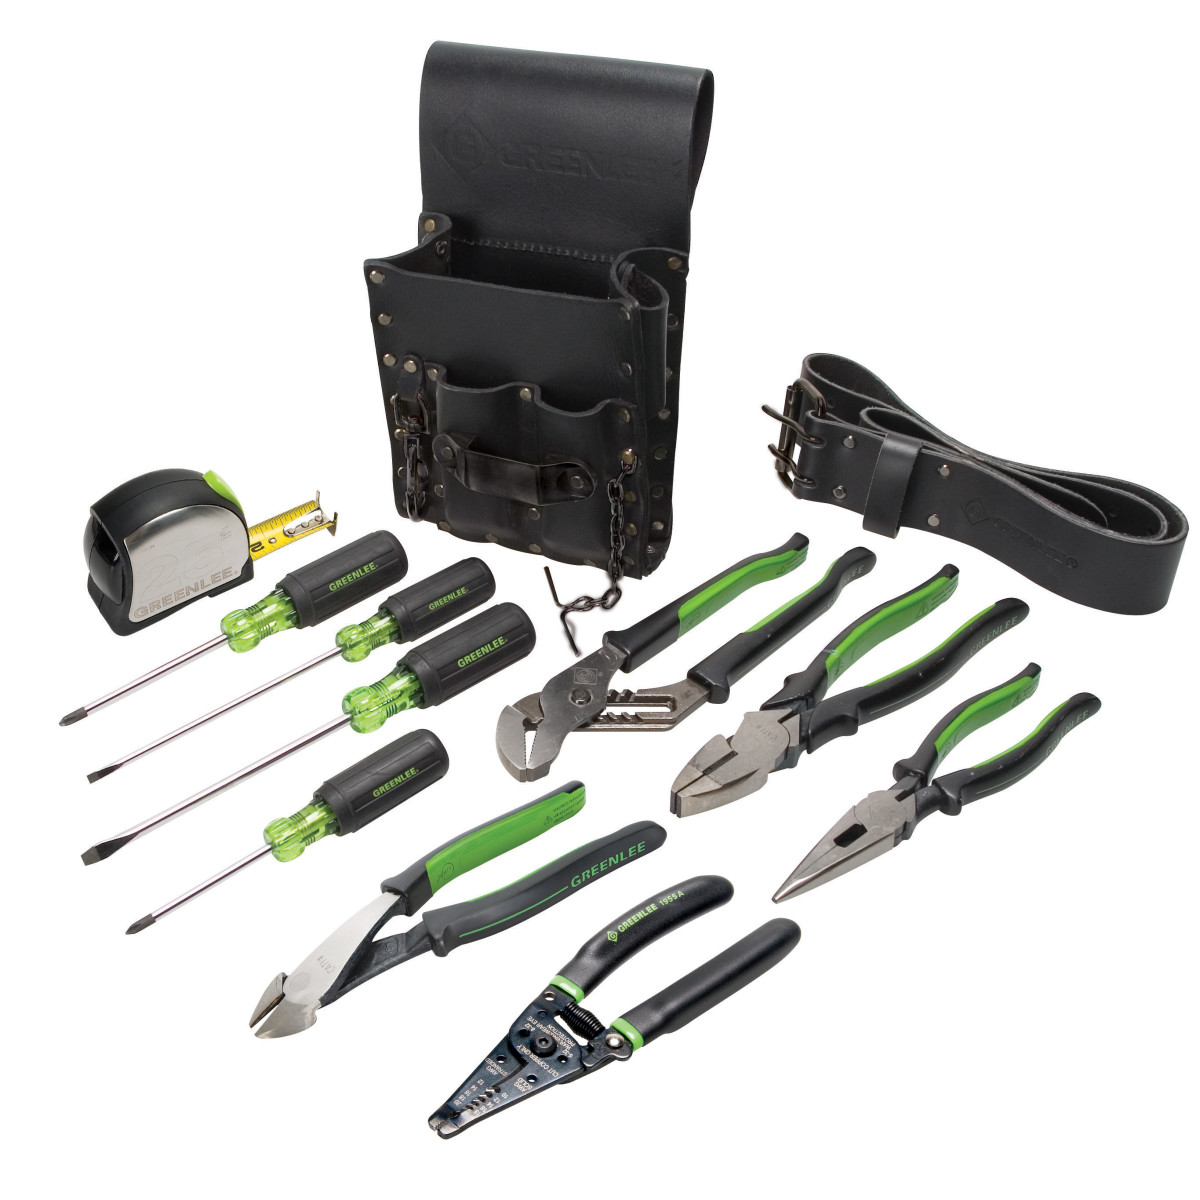 Greenlee 0159-13 Electricians Kit 12Pc